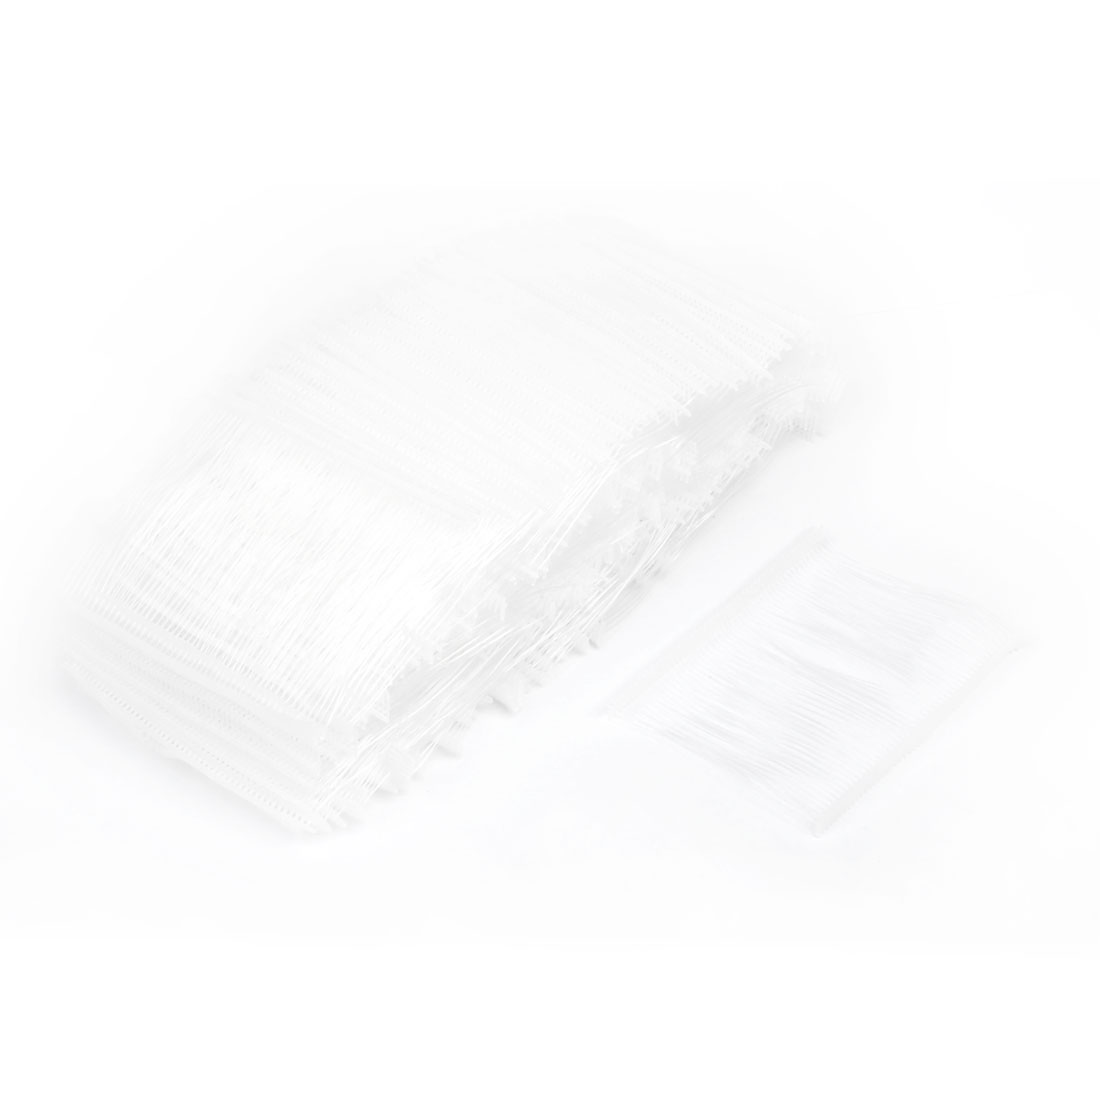 UXCELL 75Mm Length Pp Fine Tag Pins Fasteners Clear White 5000 Pcs